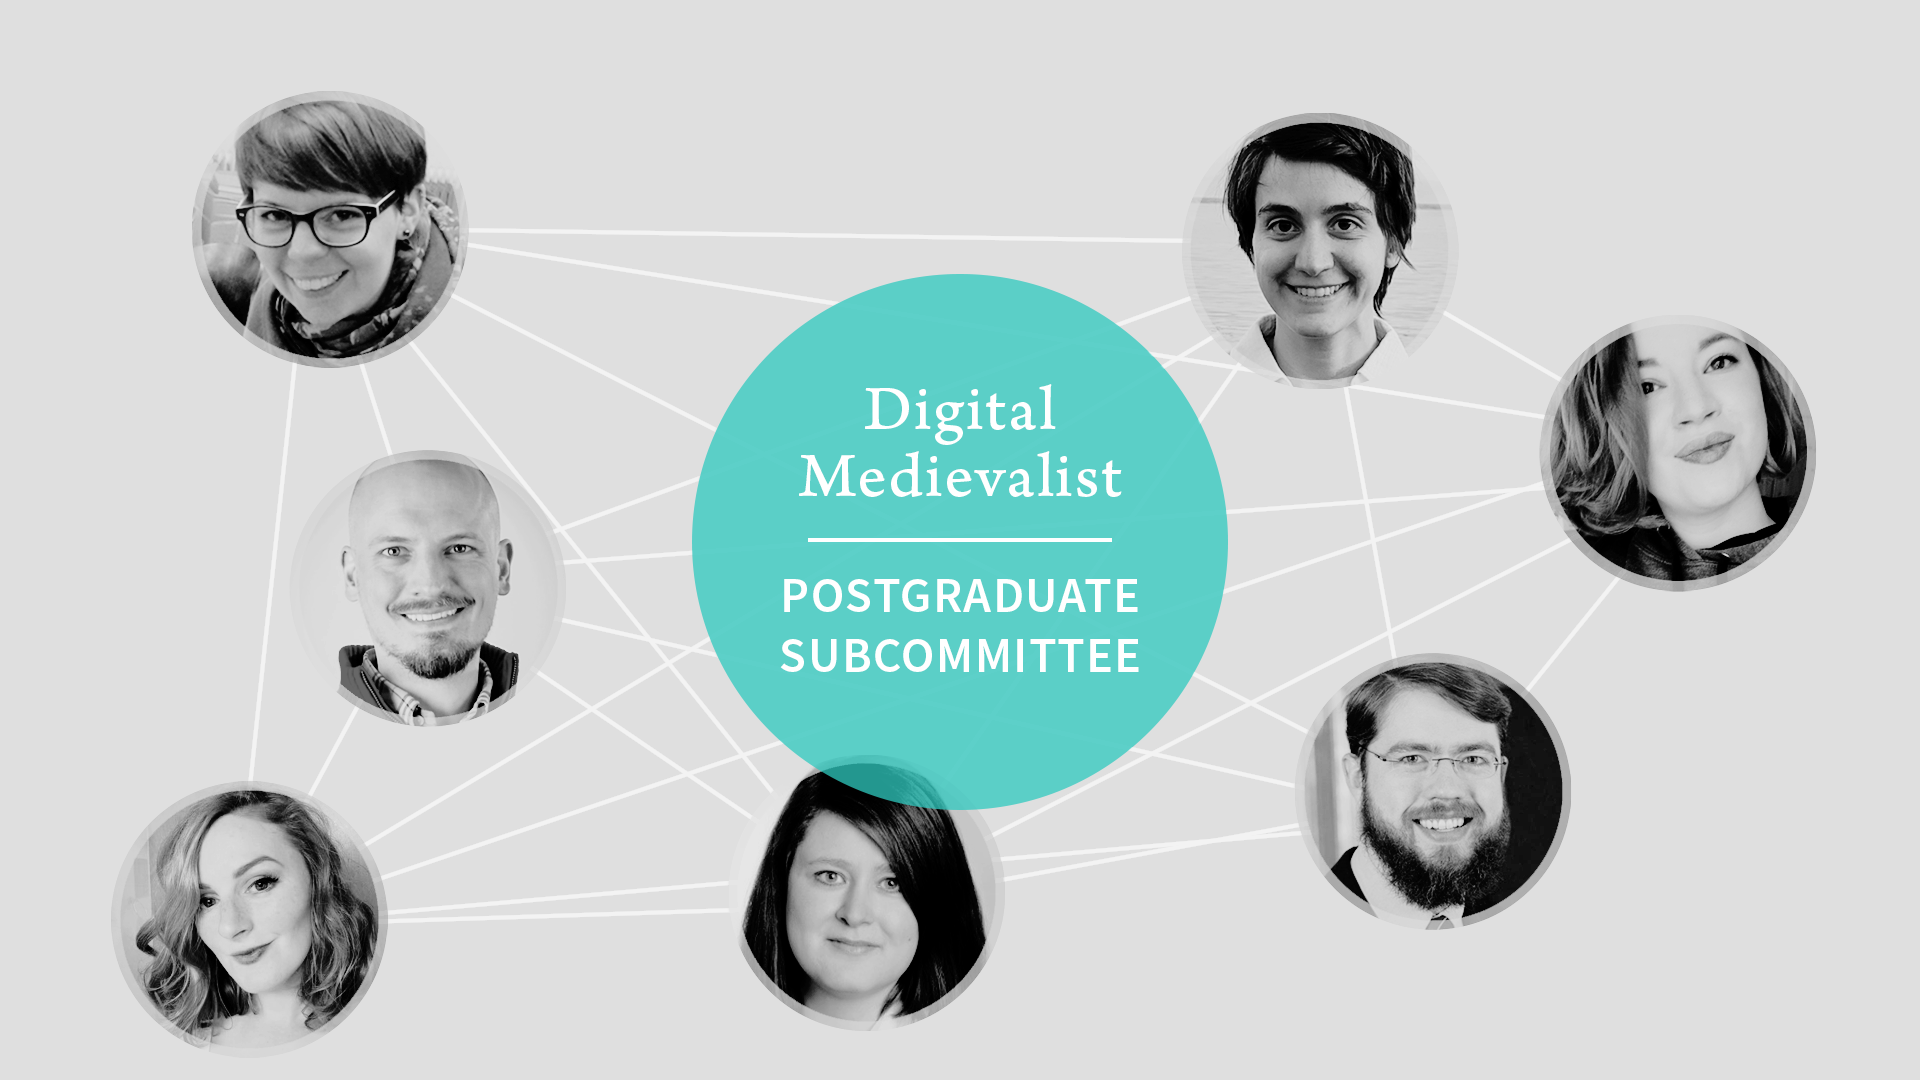 circular portrait pictures of the members of the Digital Medievalist Postgraduate Subcommittee, connected by lines